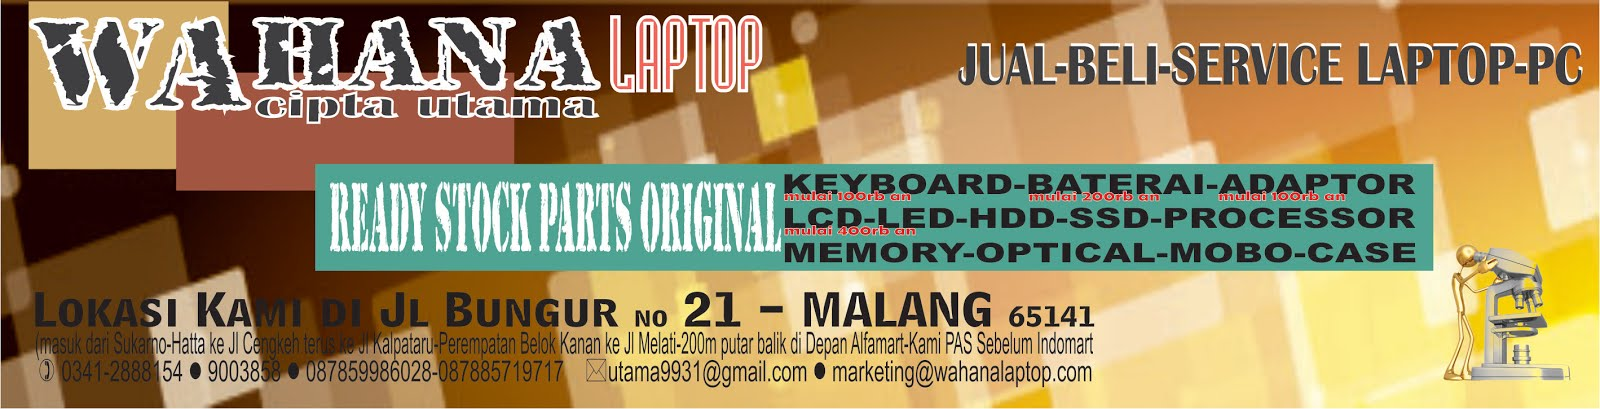 Wahana Cipta Utama - Laptop Bekas | Notebook Bekas | Laptop Second | Notebook Second